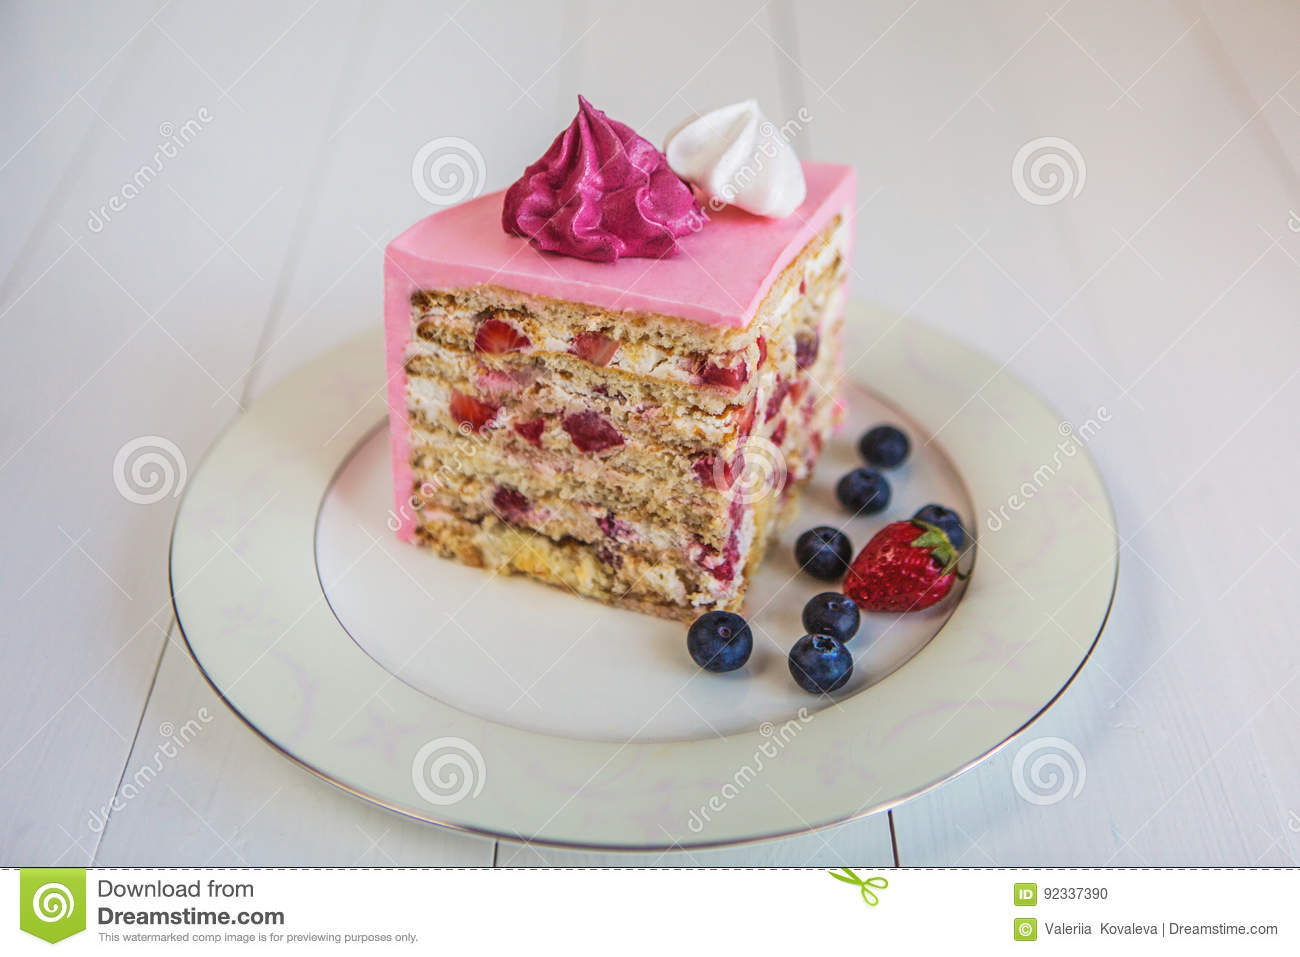 A piece of strawberry-creamy cake, covered with a pink cream and decorated with marshmallows and berries